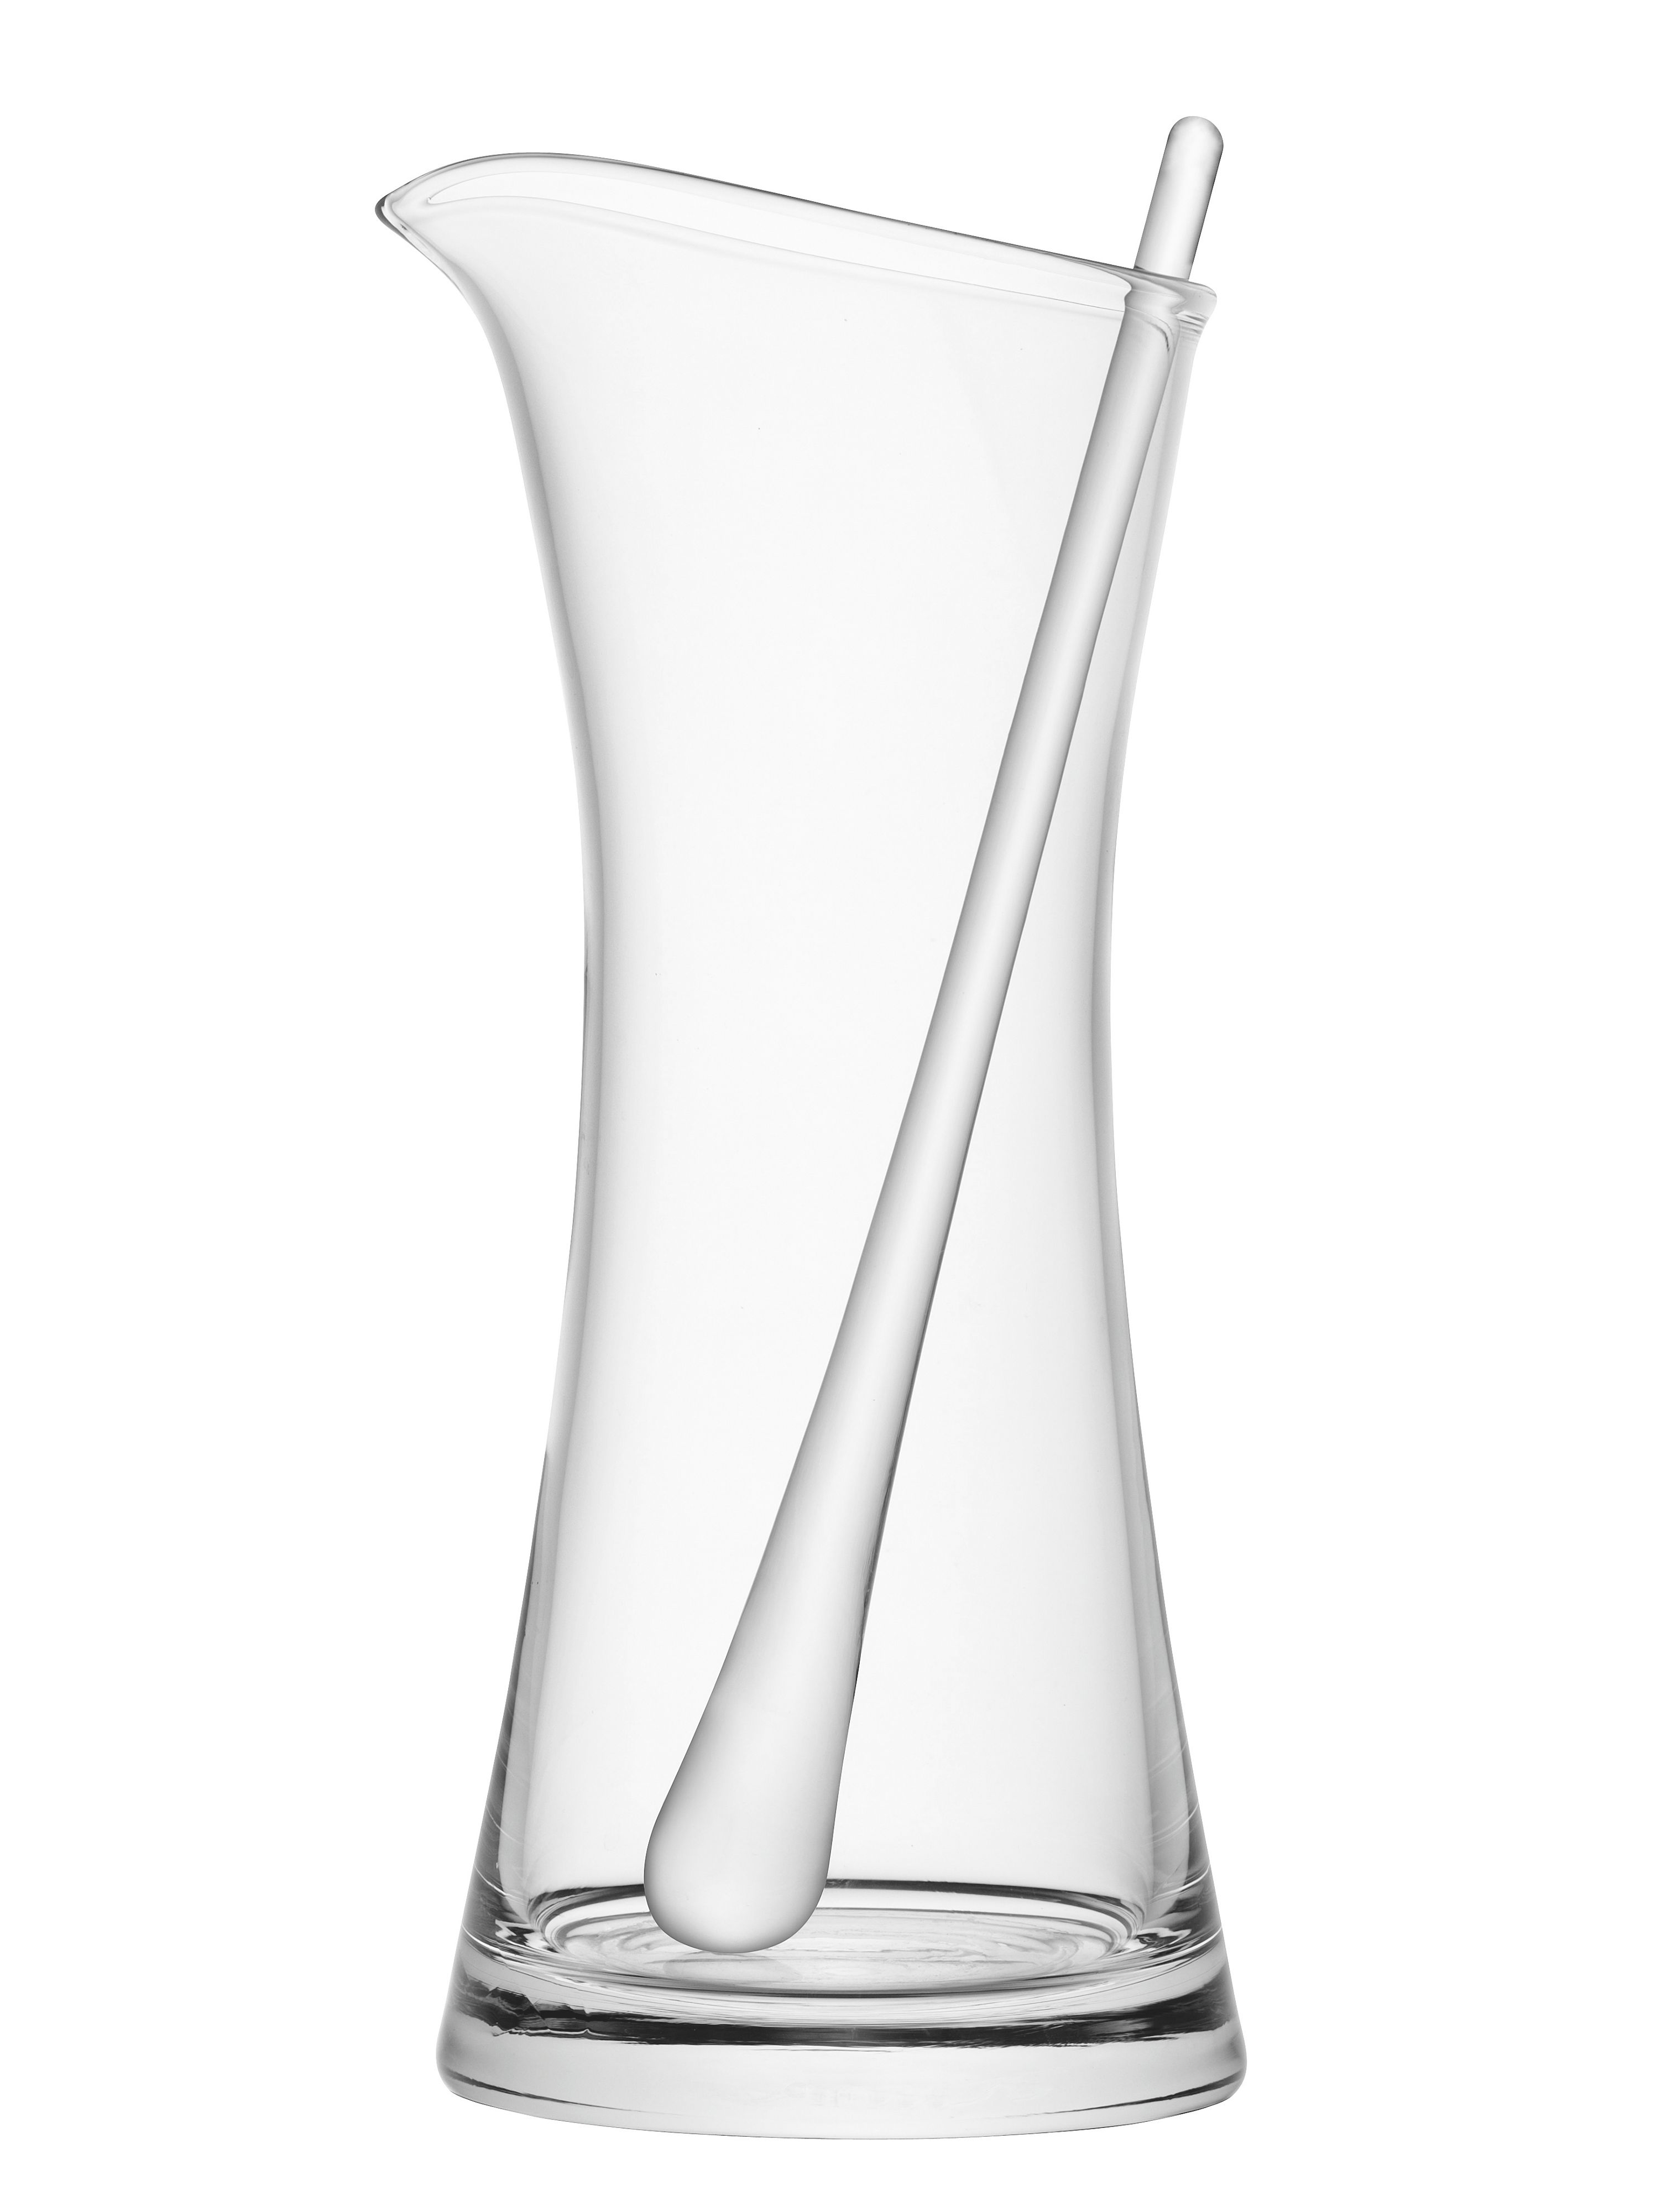 Image of LSA Bar Cocktail Jug & Stirrer 1.2L Clear